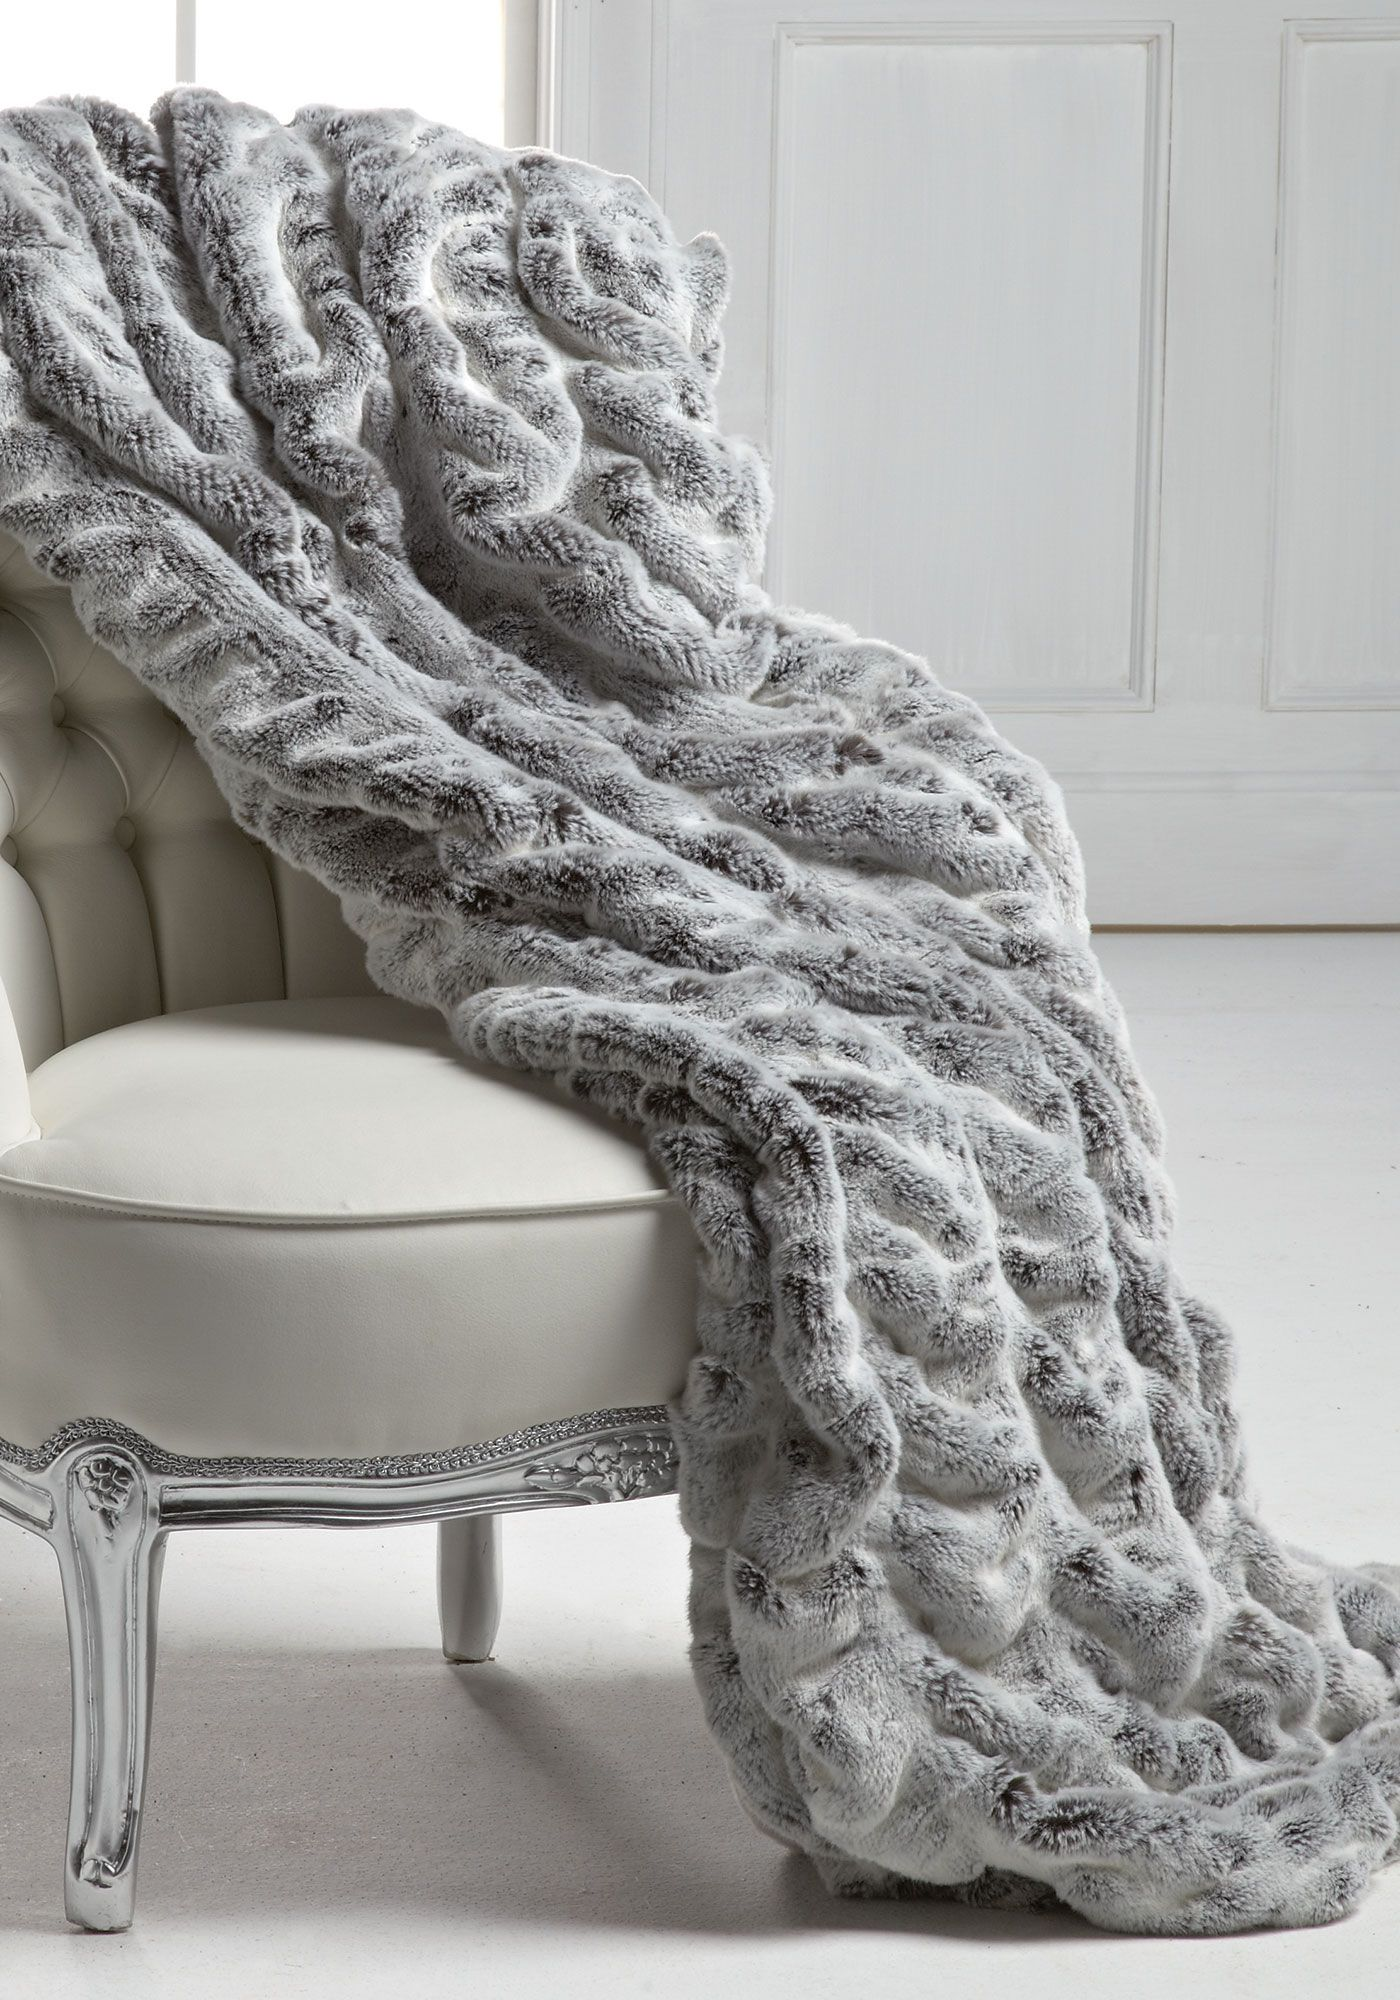 InStyle Decor Luxury Fashion Designer Faux Fur Throws